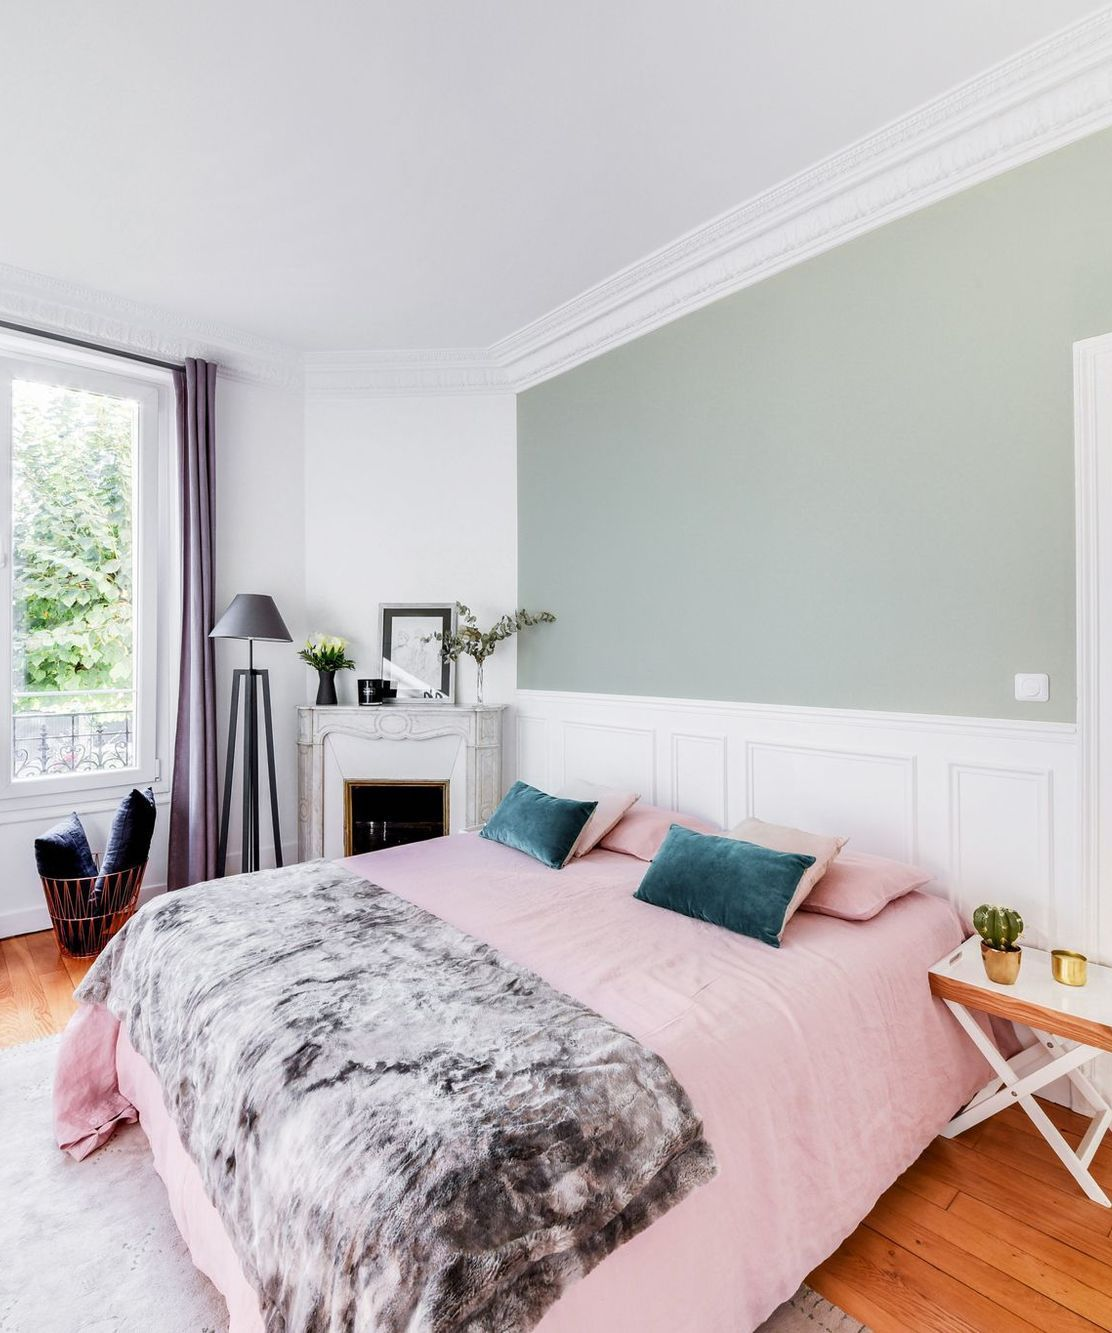 Parisian bedroom with Green accent wall via CoteMaison Isabelle Le Rest Interieurs